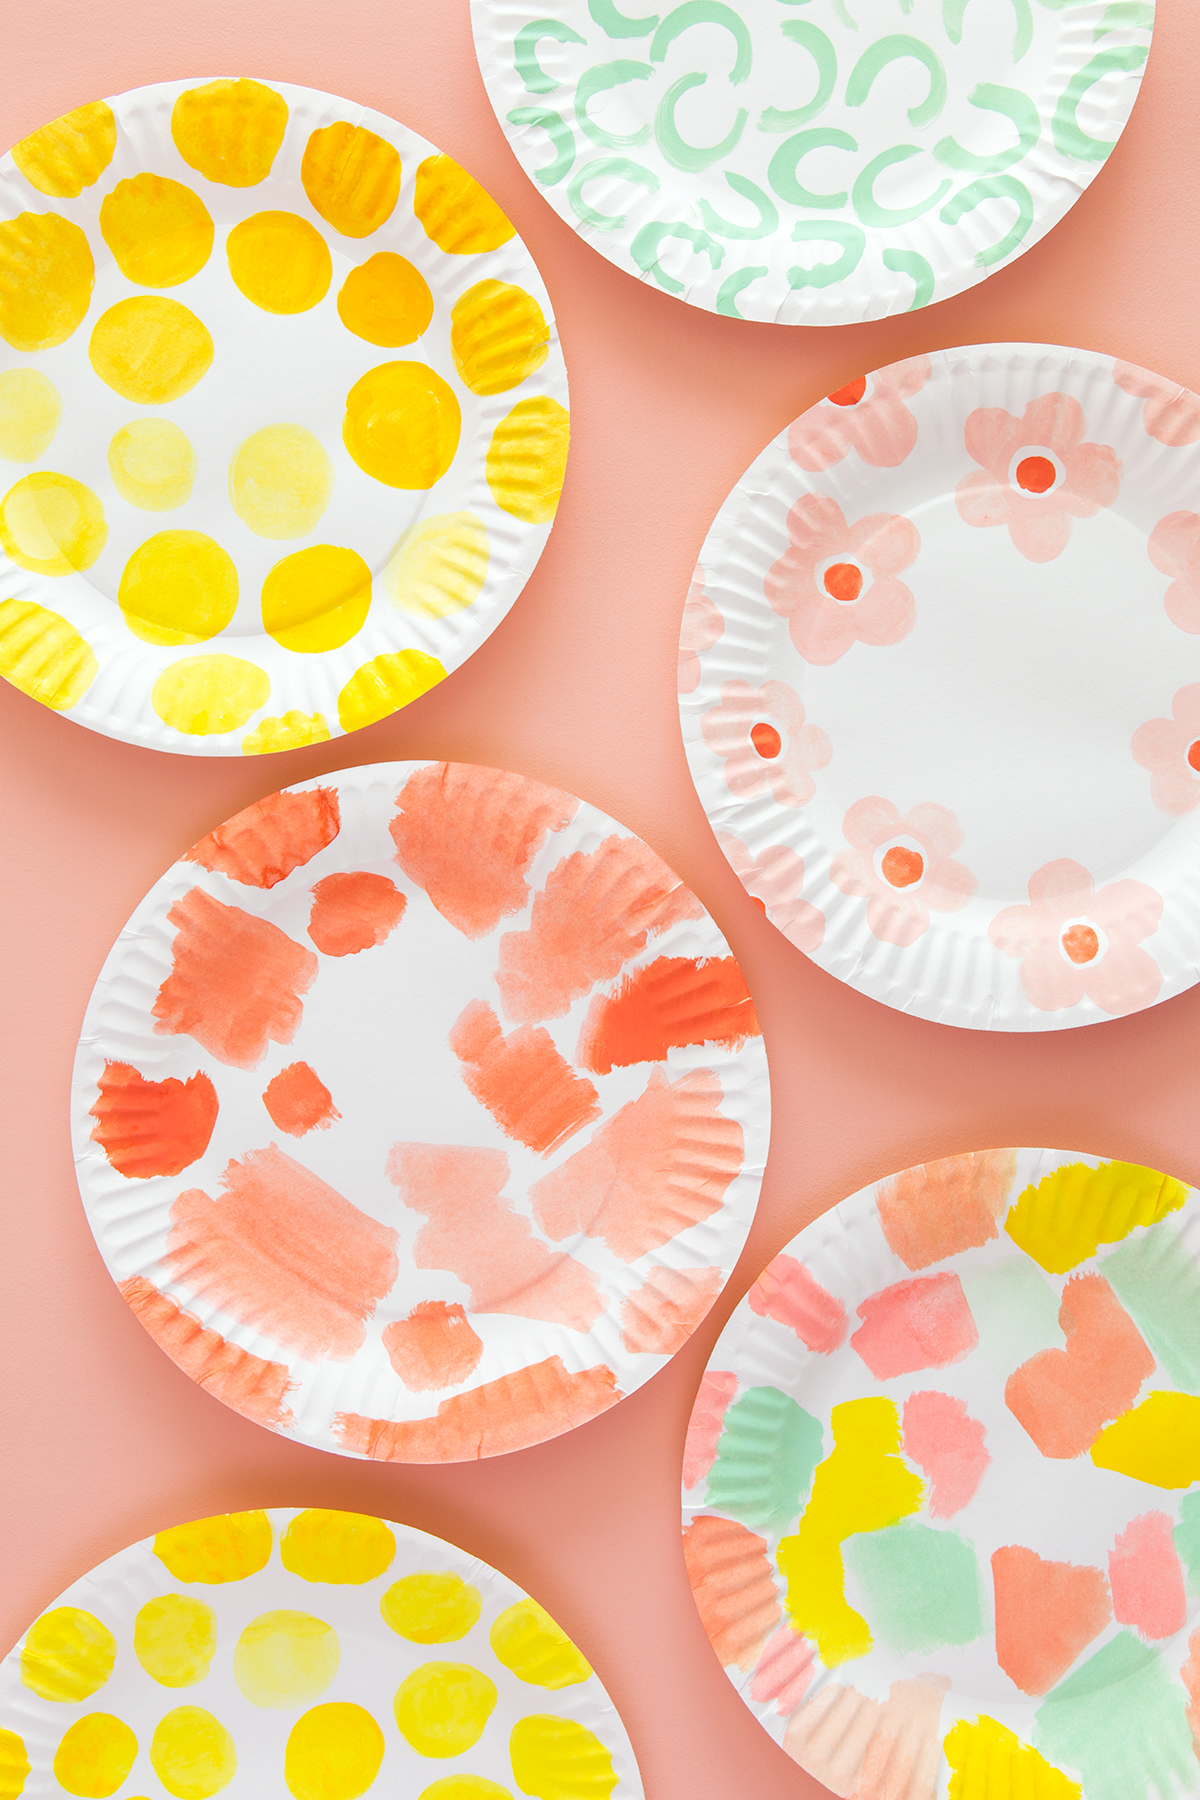 Learn how to make a food container using a paper plate! Click through for video instructions.